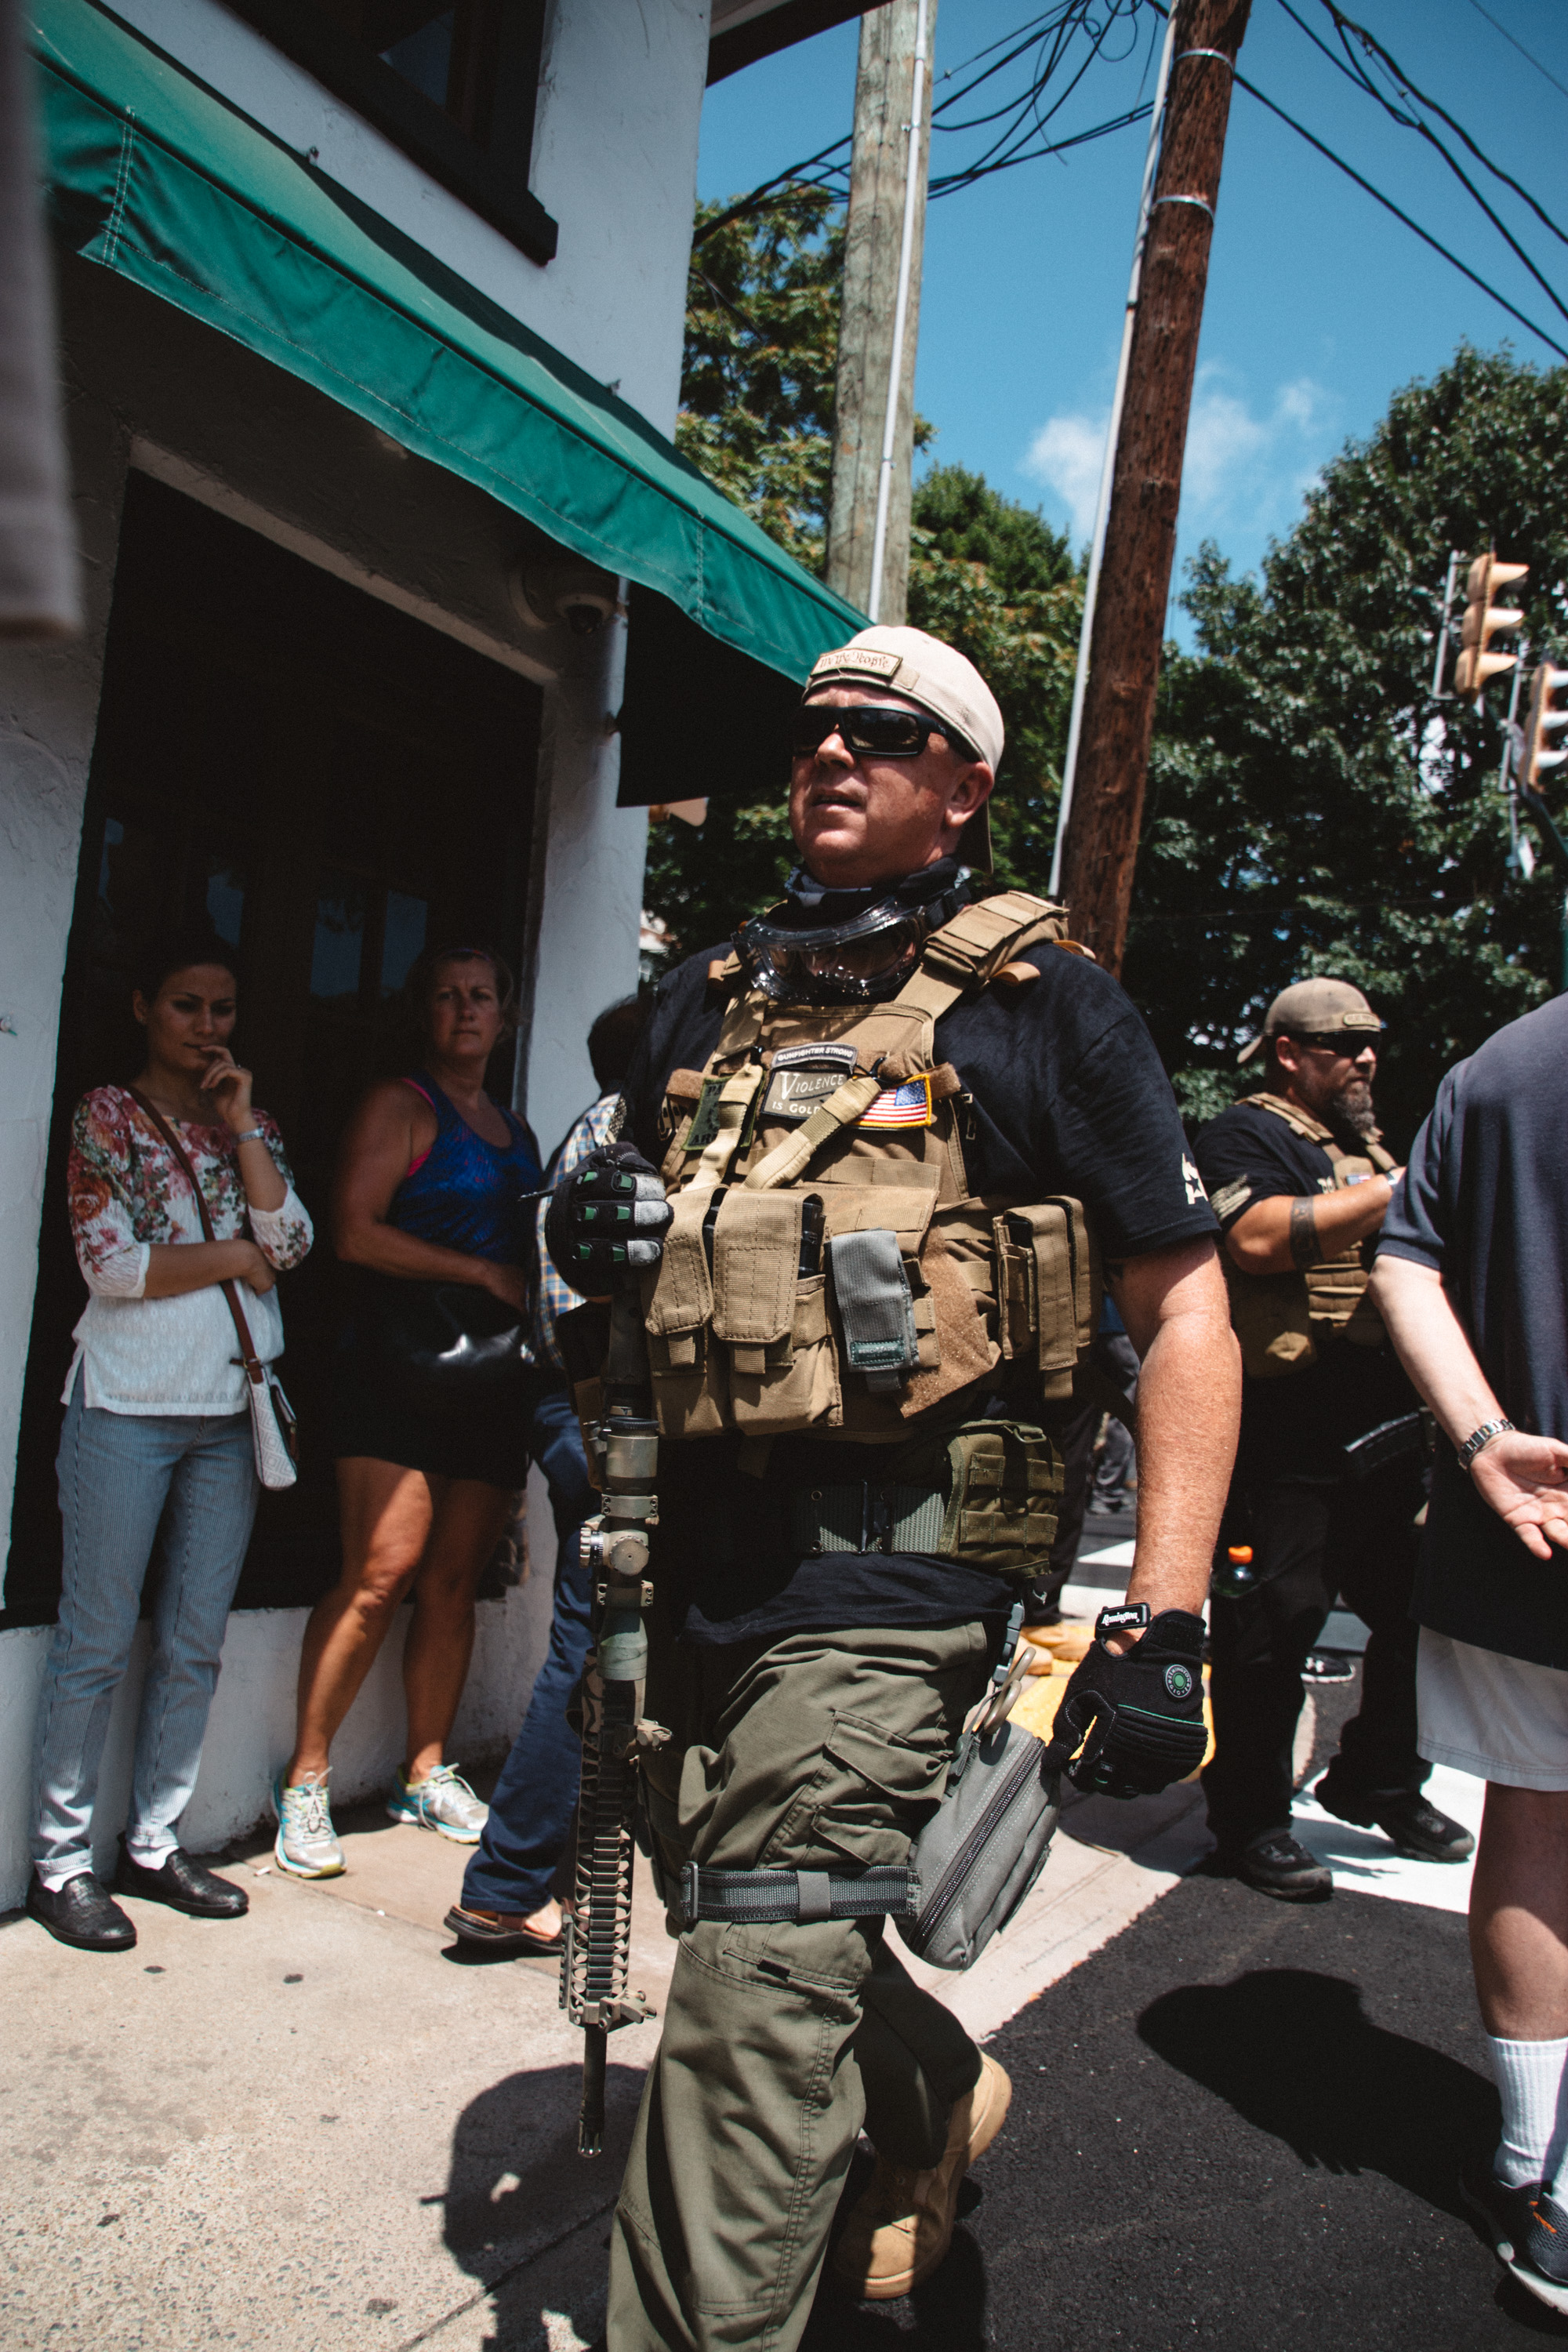 charlottesville-protests-4.jpg